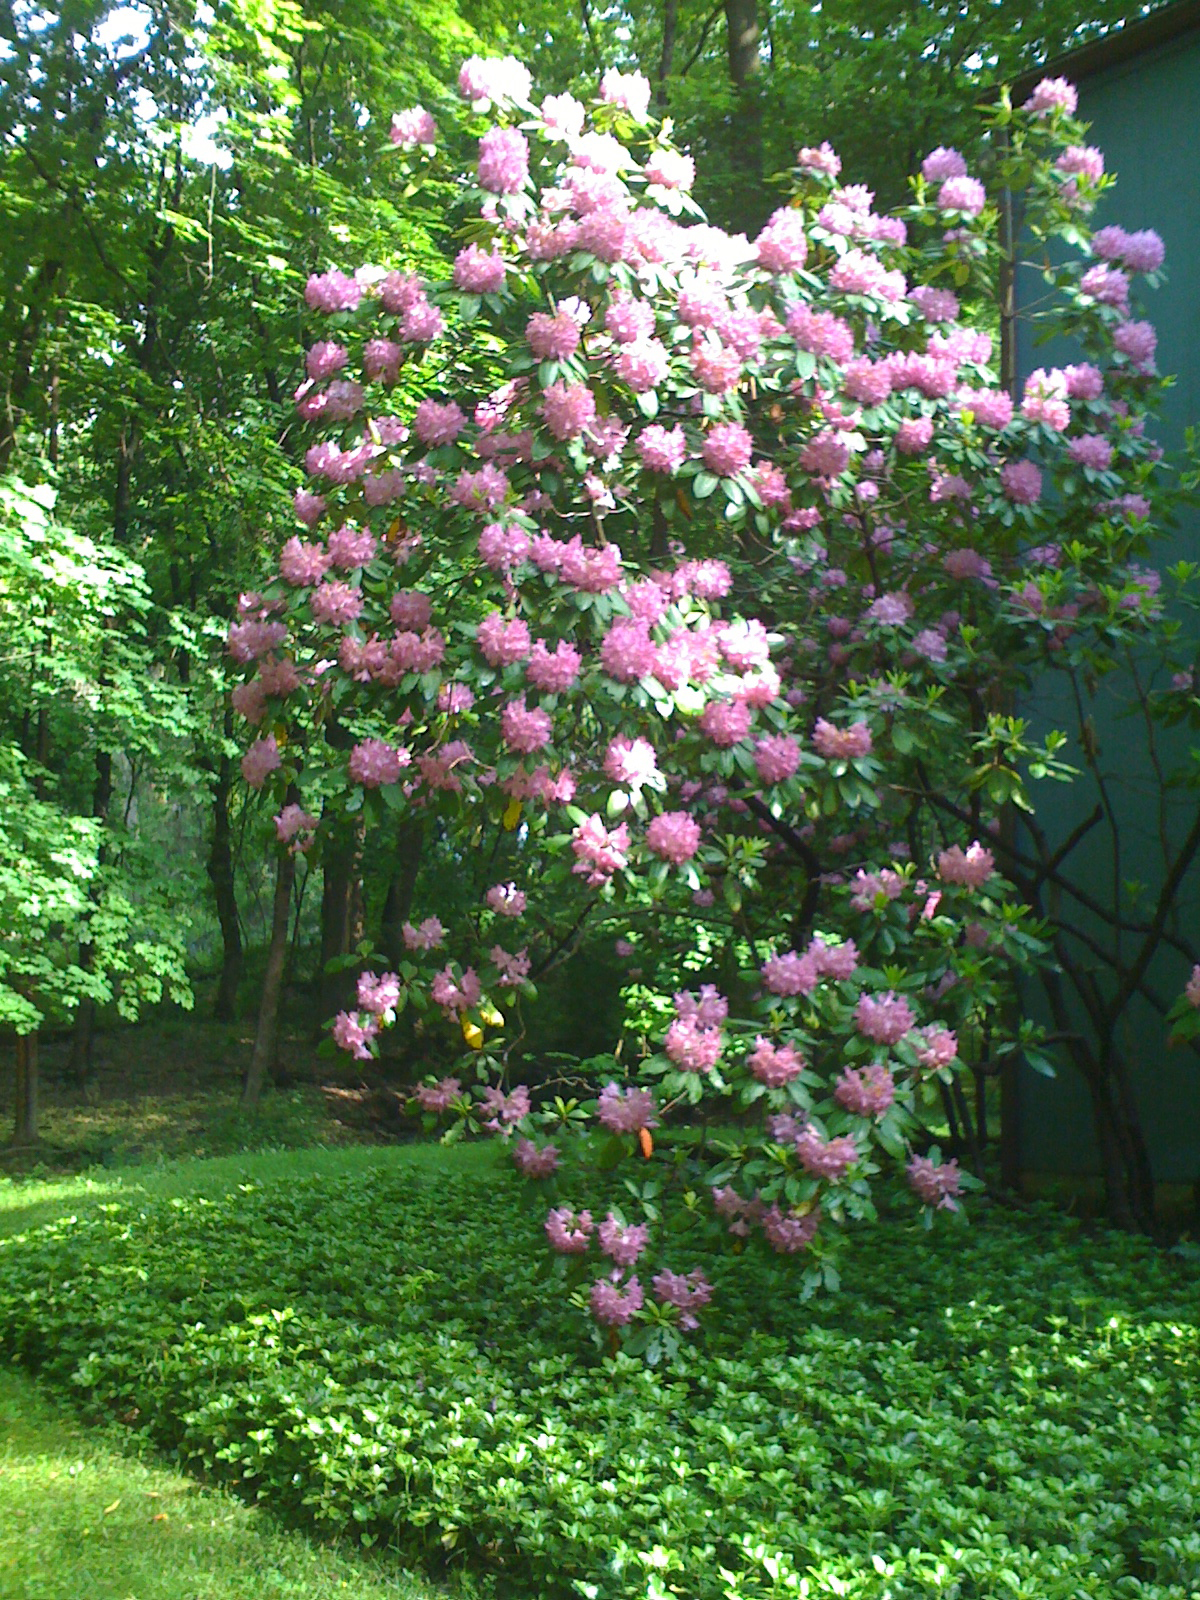 The big rhododendron in all its glory.